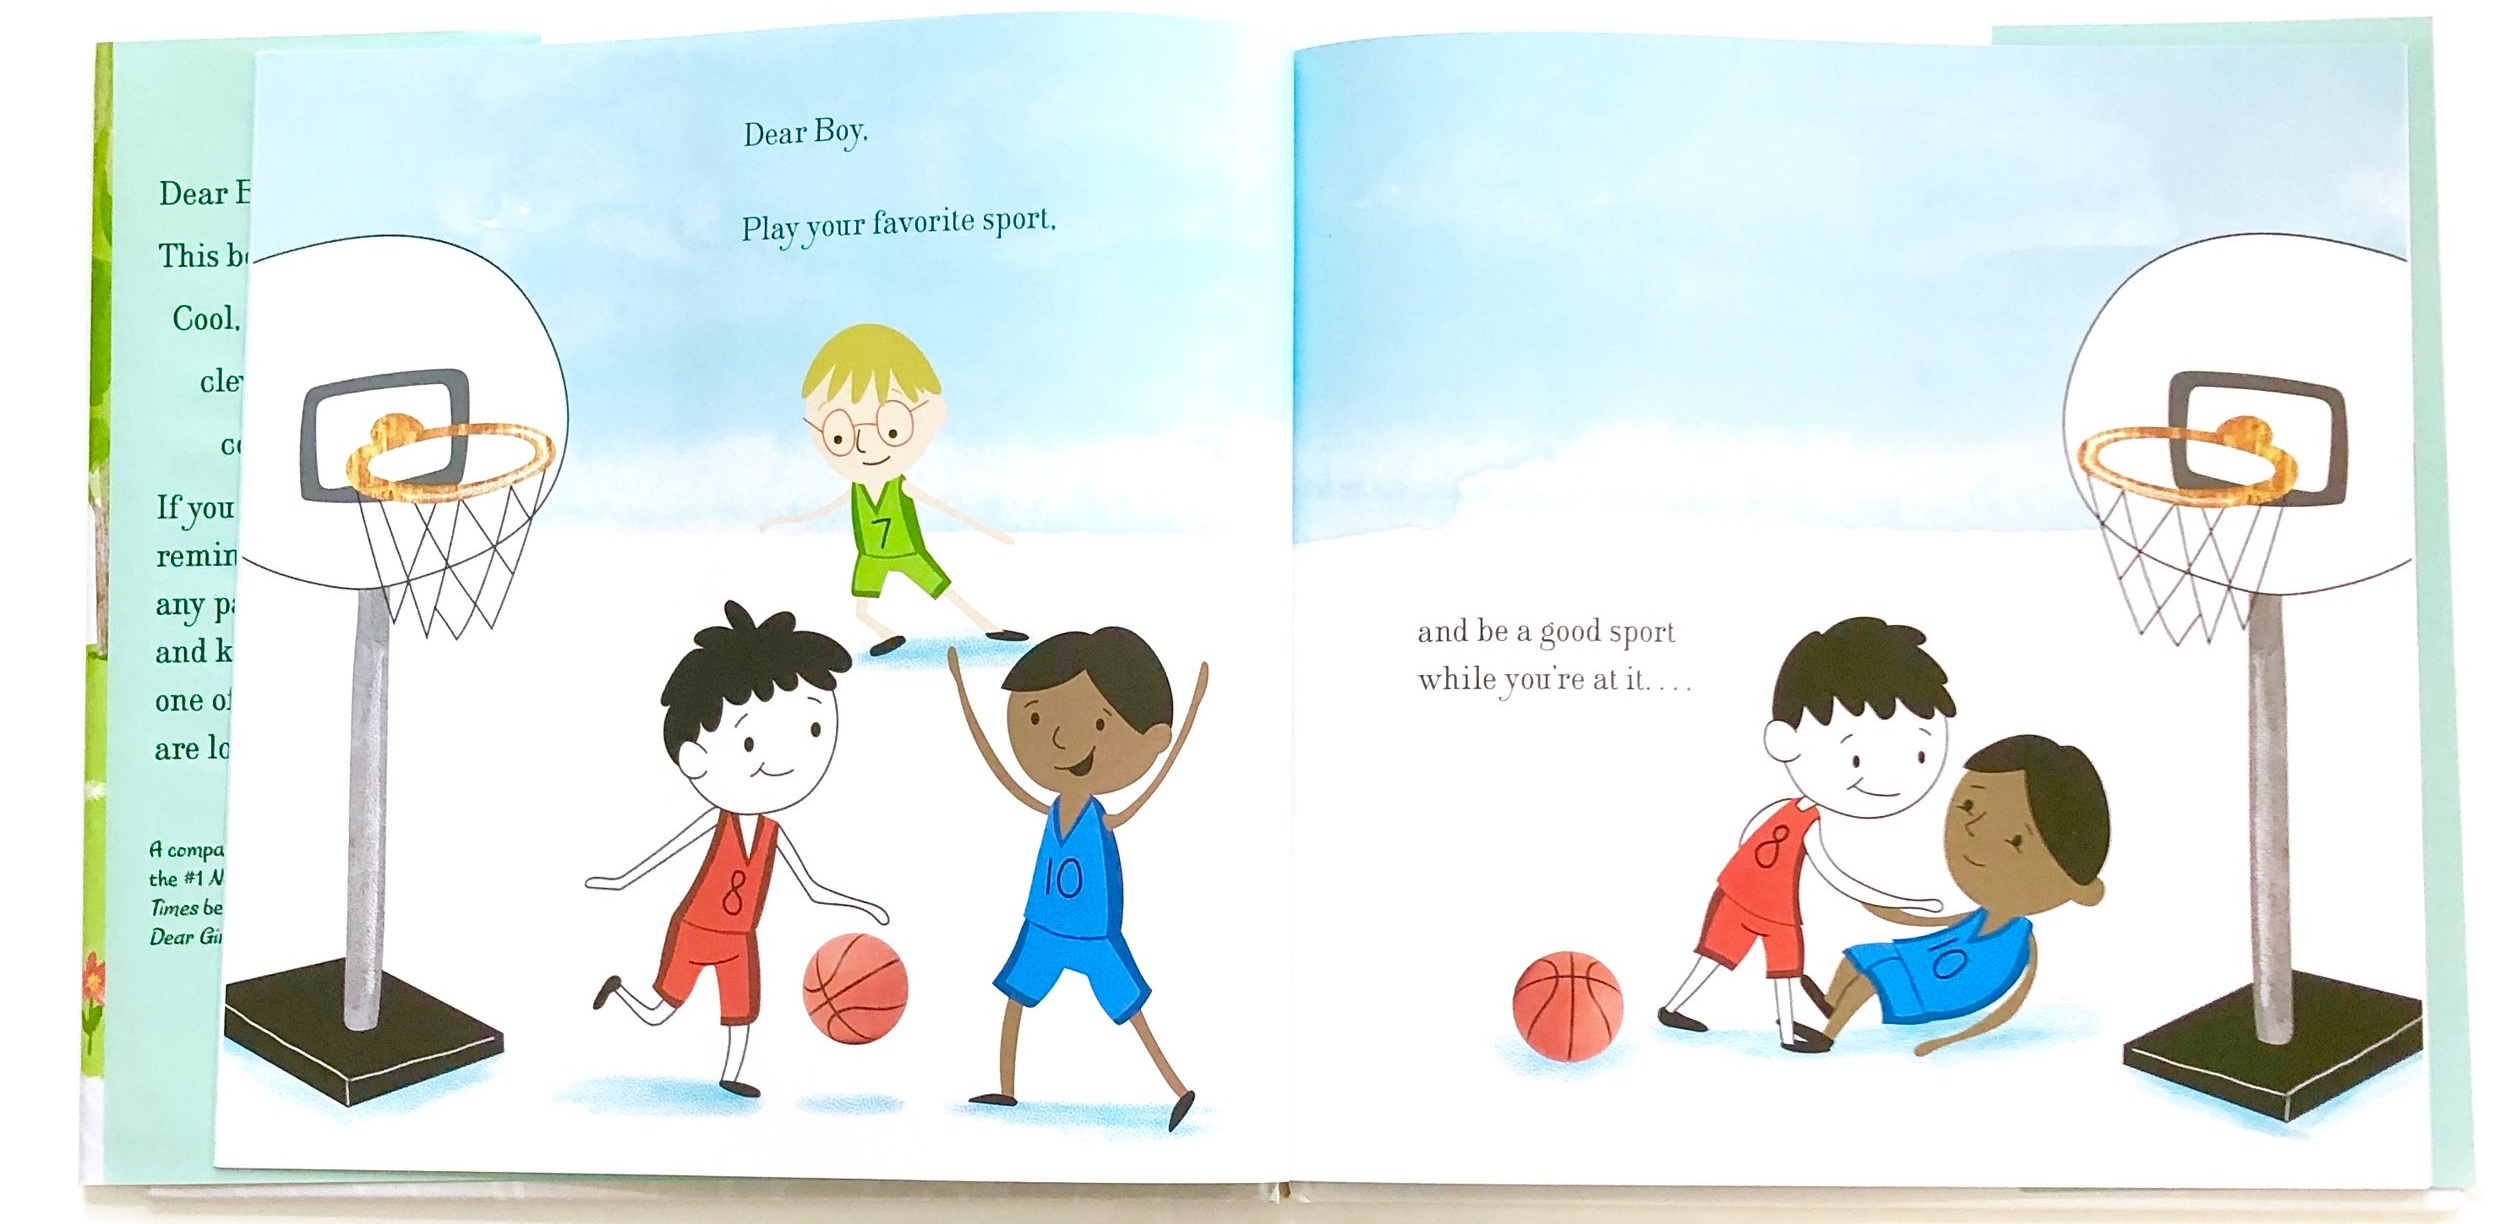 Books for Little Boys, DEAR BOY by Paris Rosenthal, Jason Rosenthal and illustrated by Holly Hatem